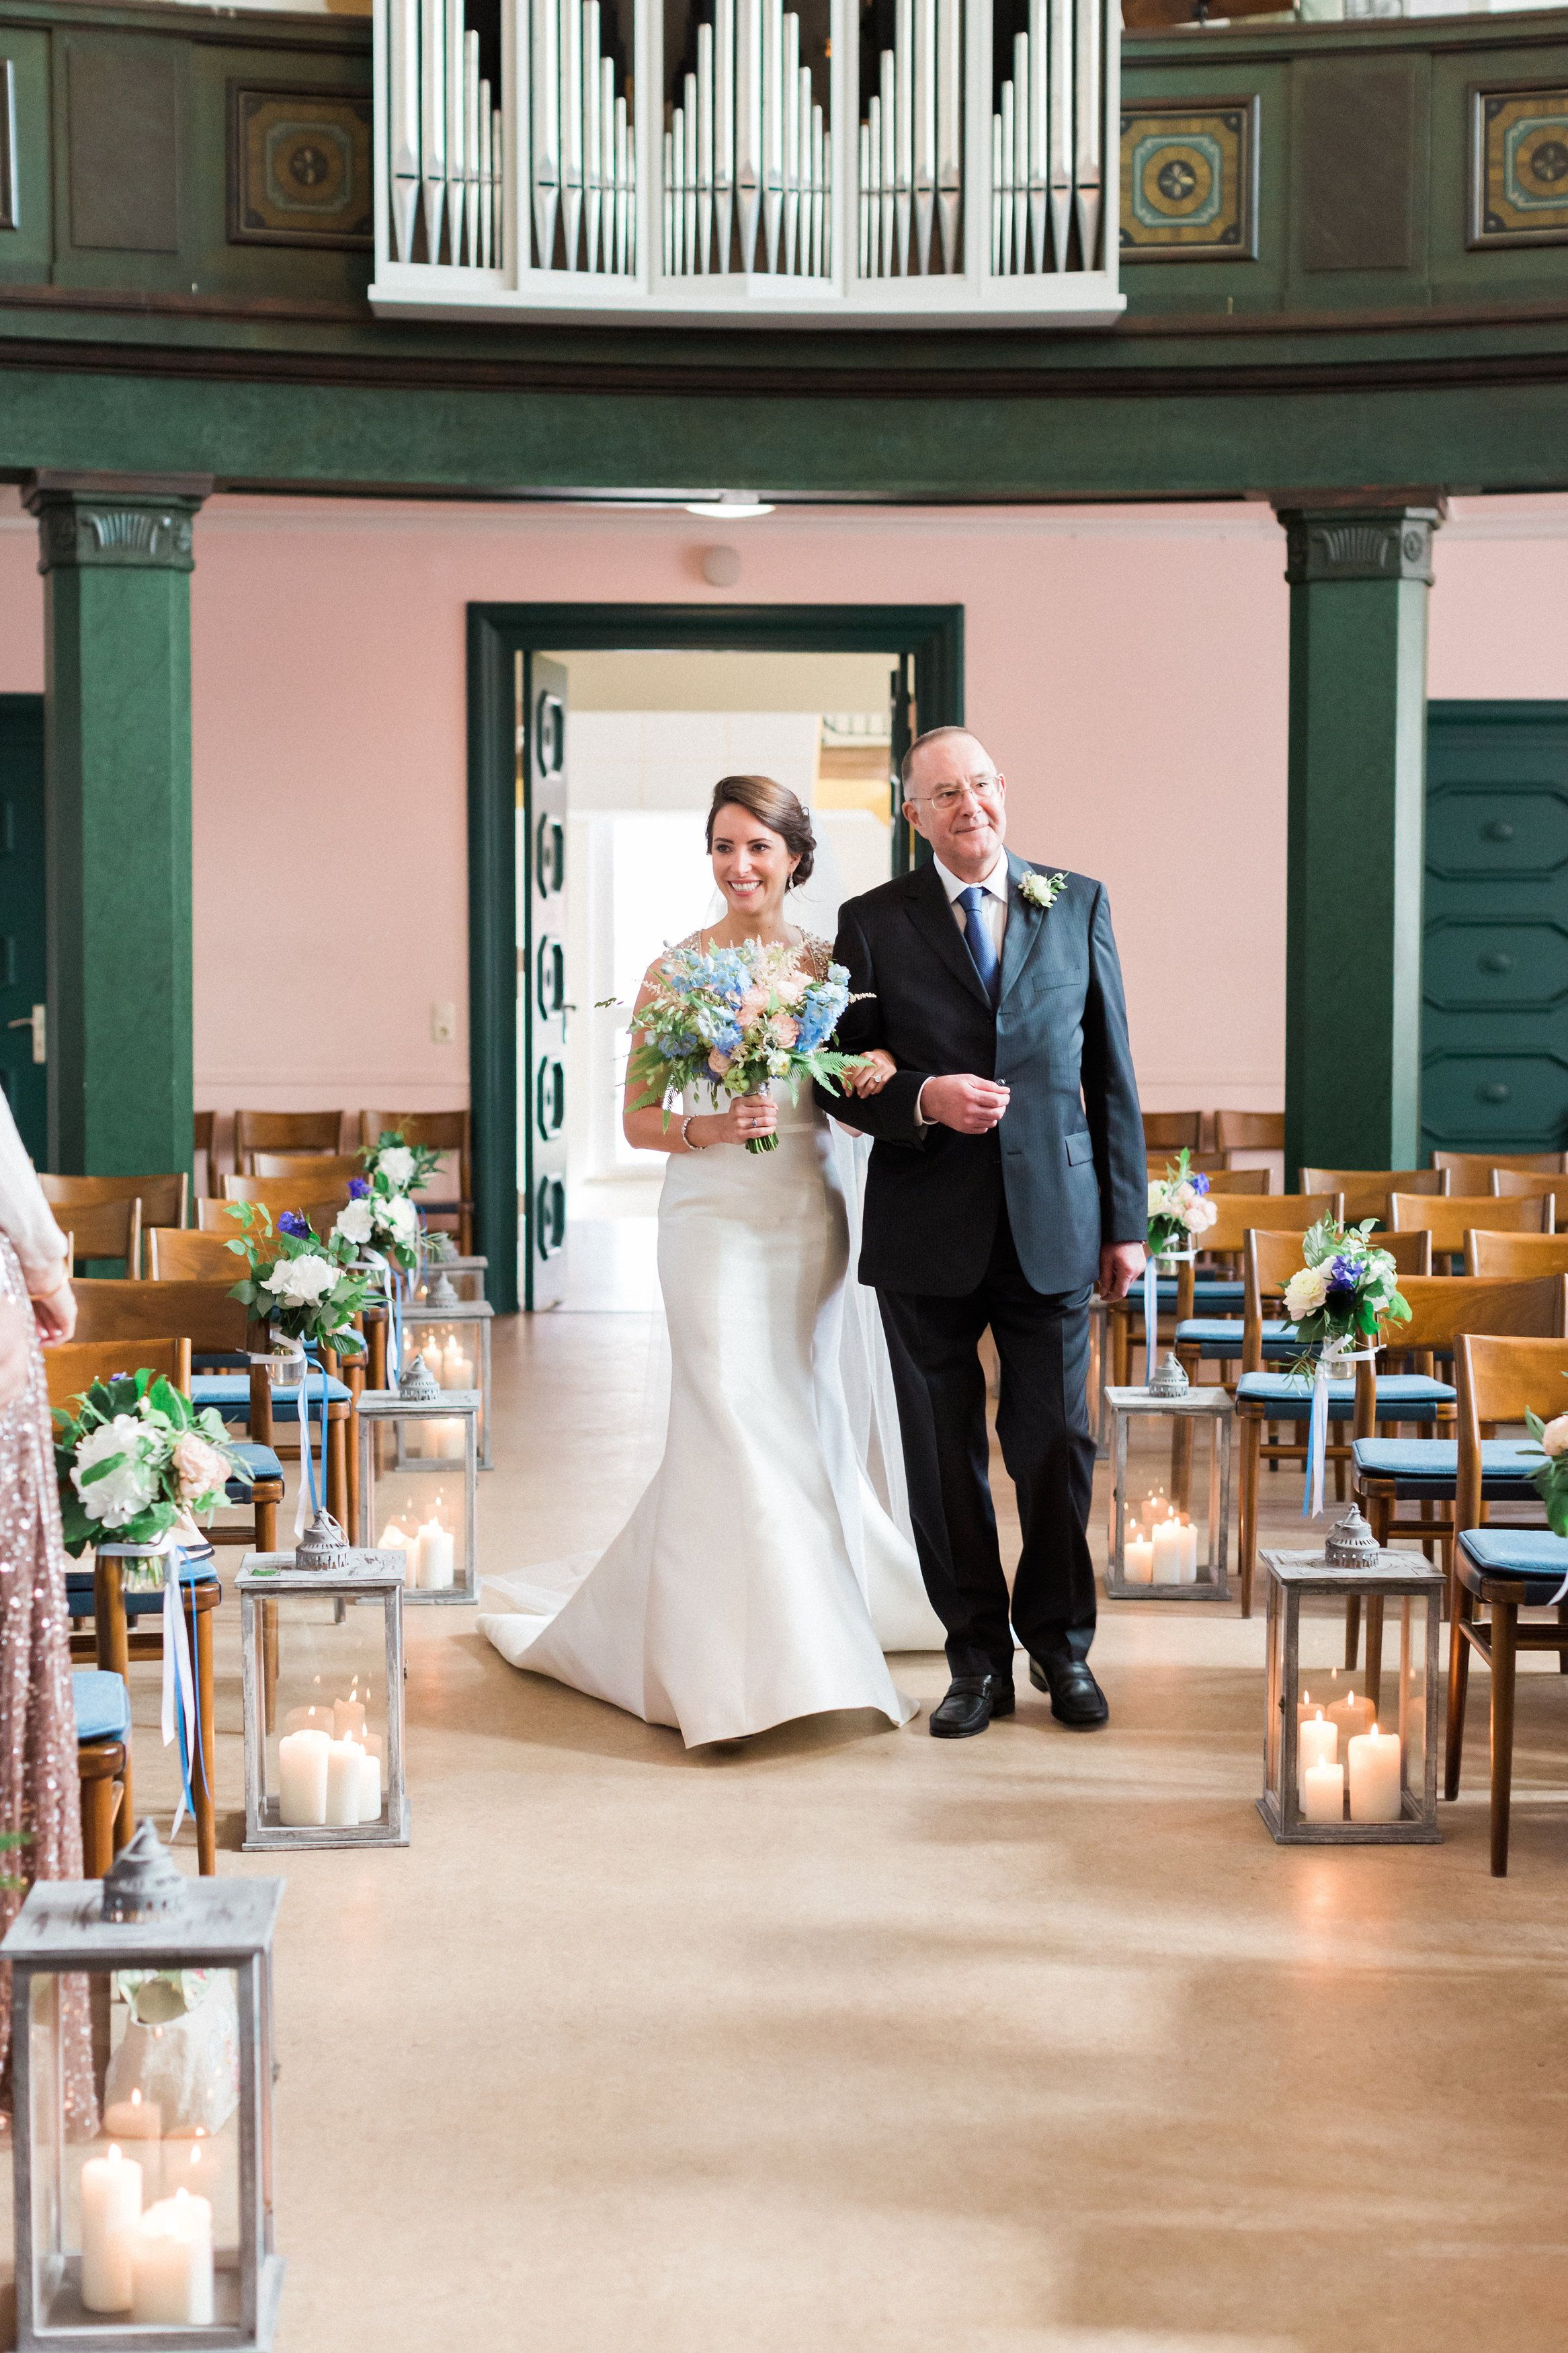 We are so in love with our german american wedding couple who came